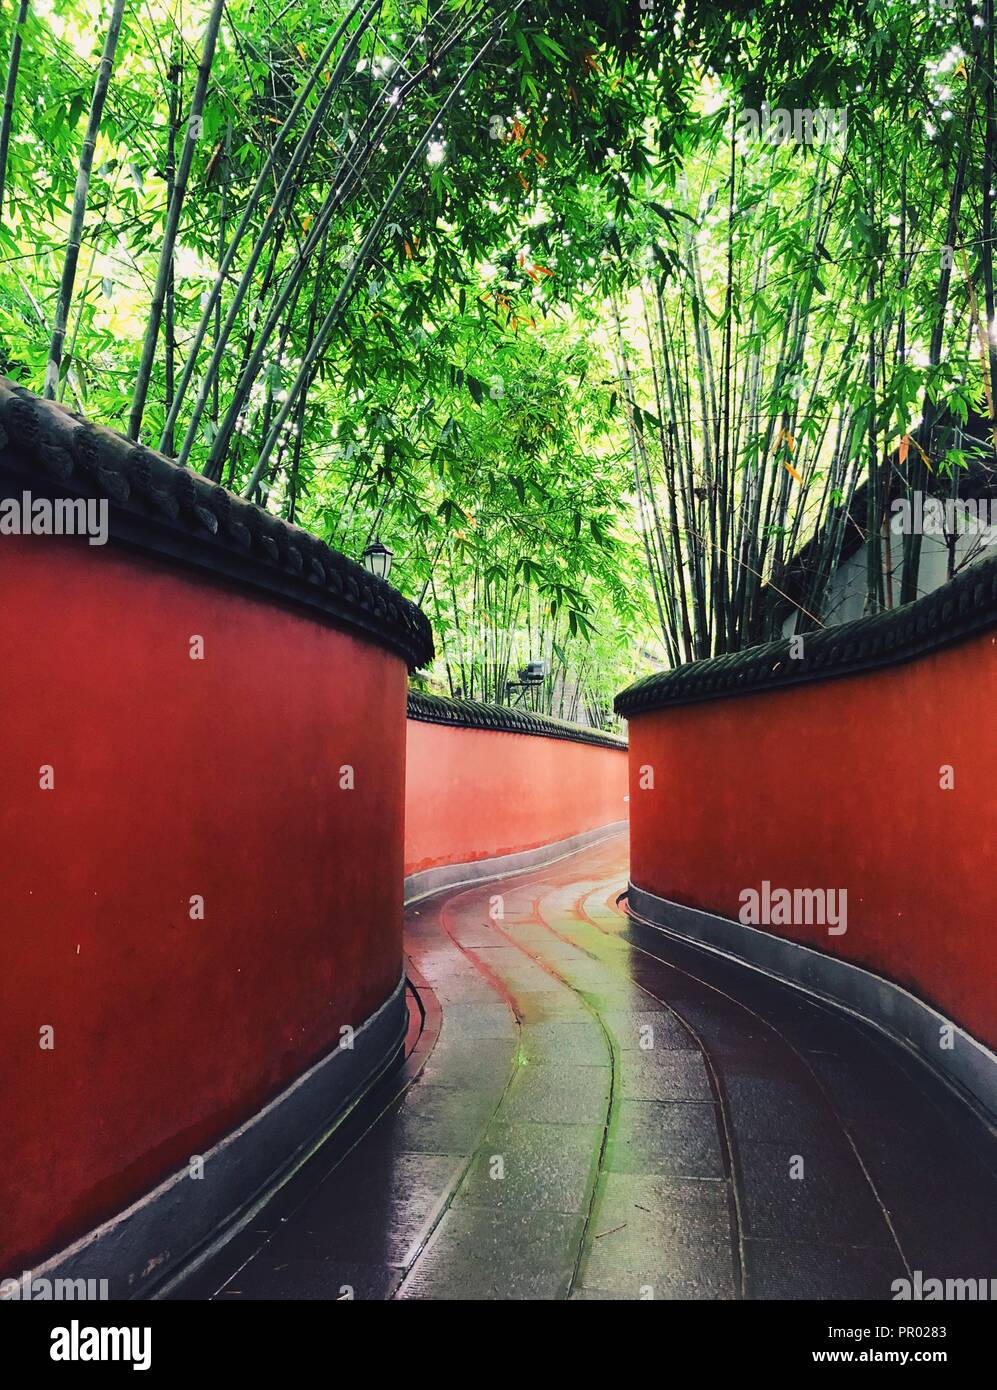 A piece of bamboo forest with red wall surrounded in Chengdu Wuhou